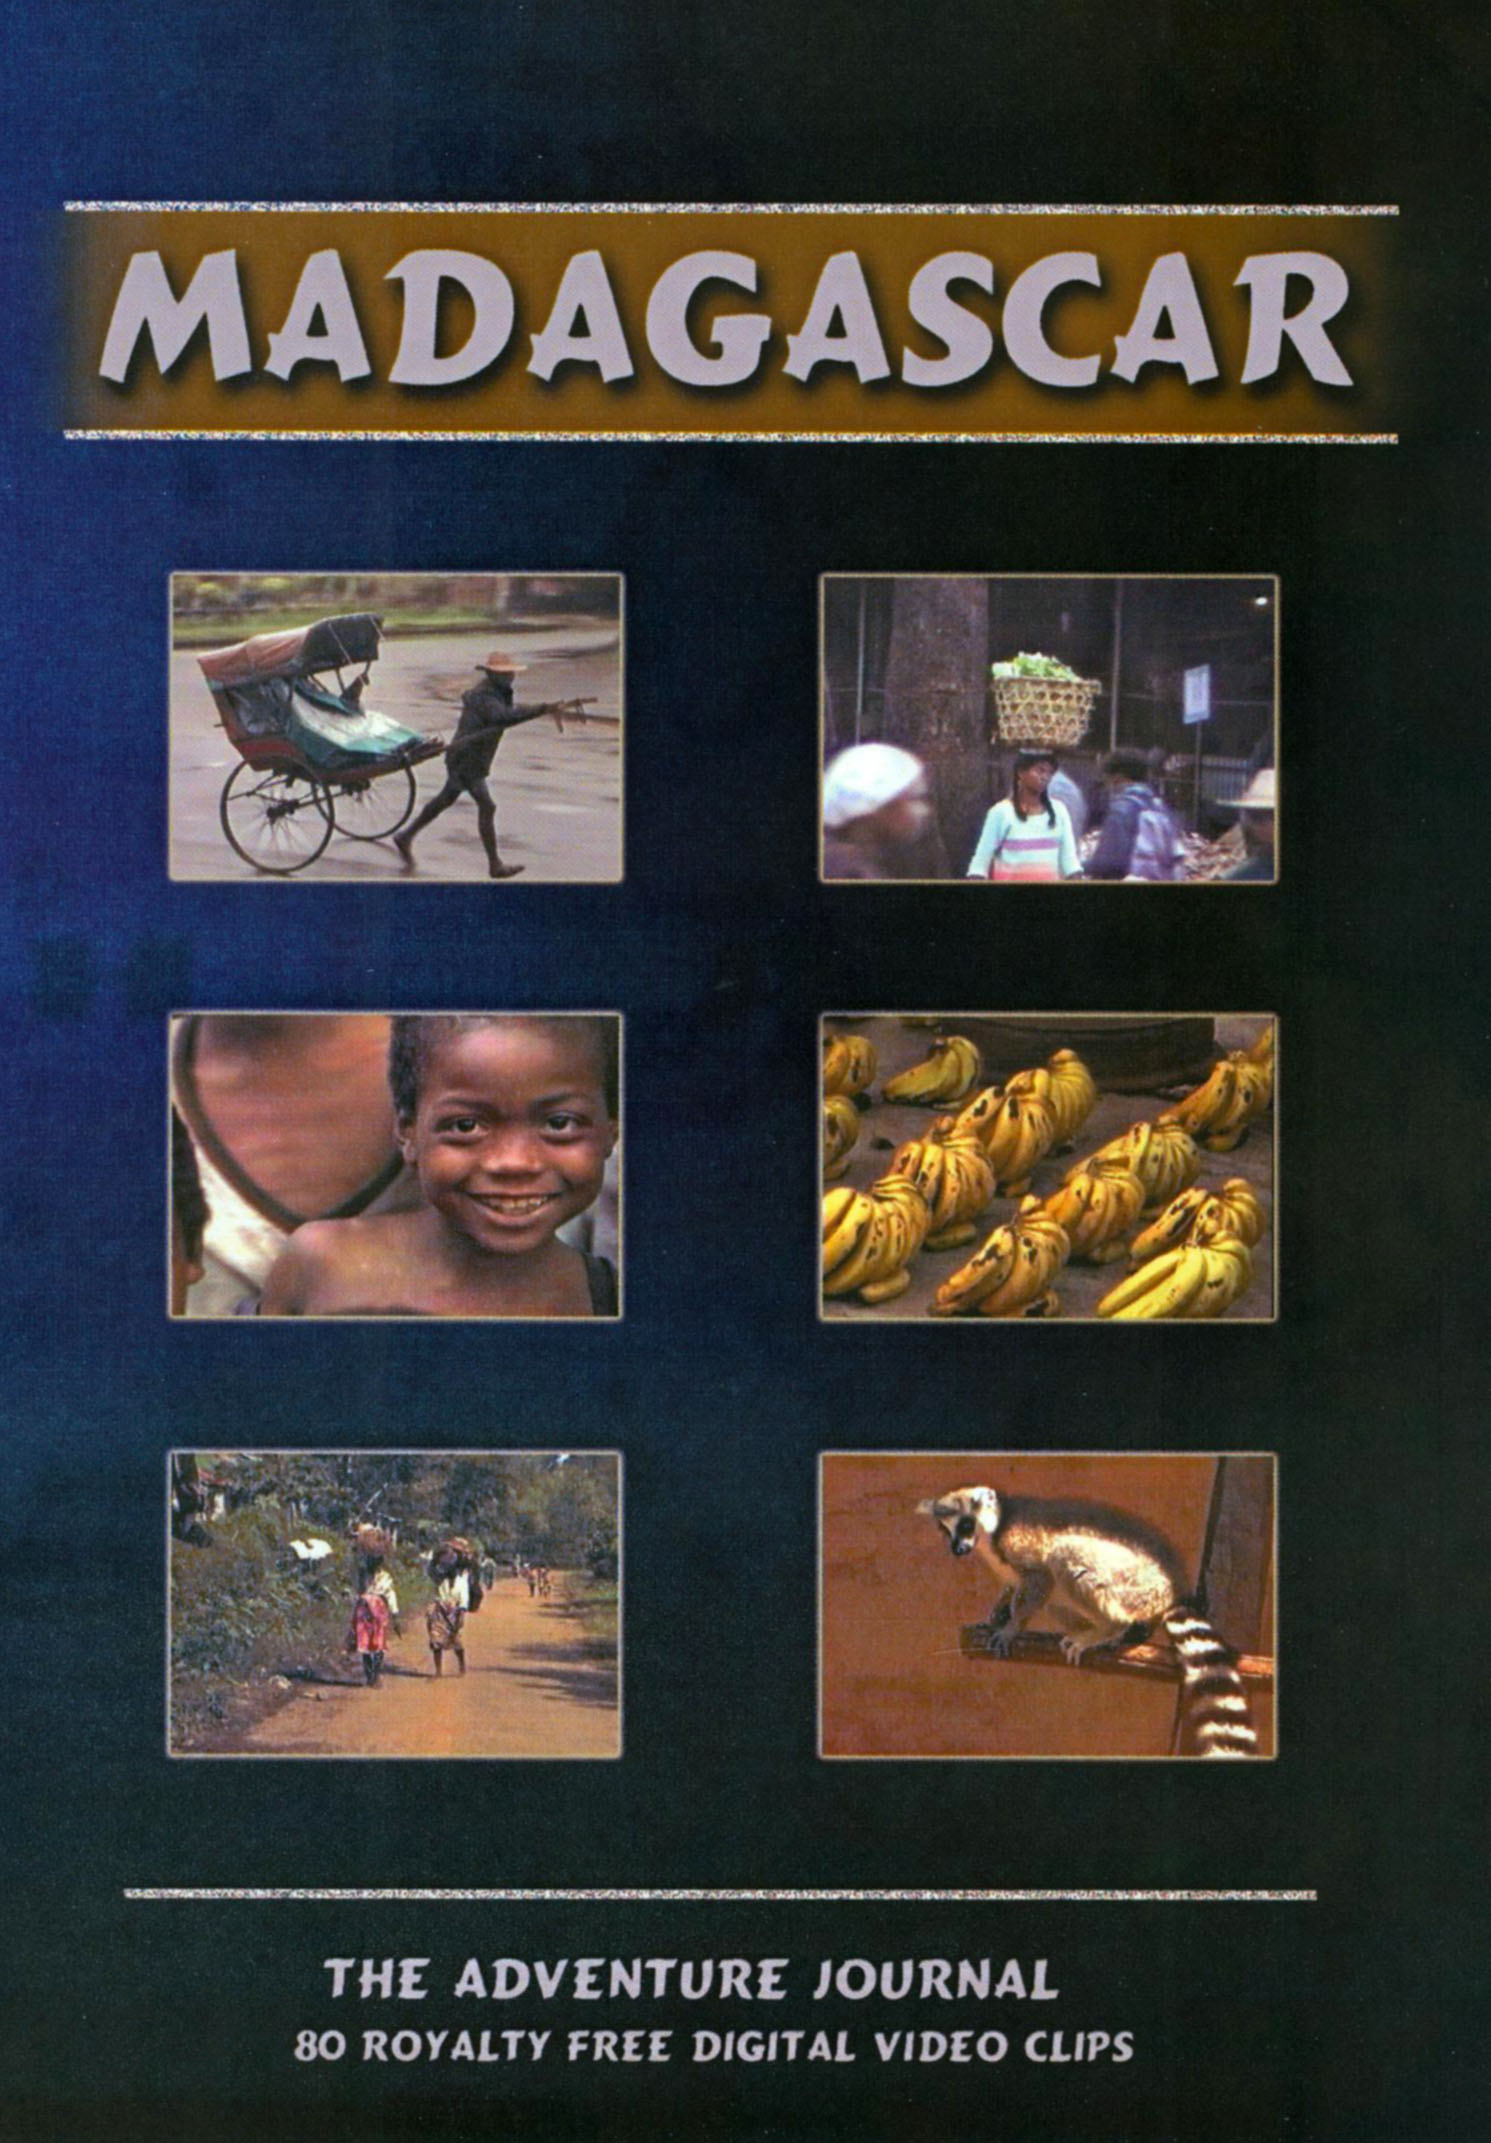 Madagascar: The Adventure Journal - 80 Royalty Free Digital Video Clips